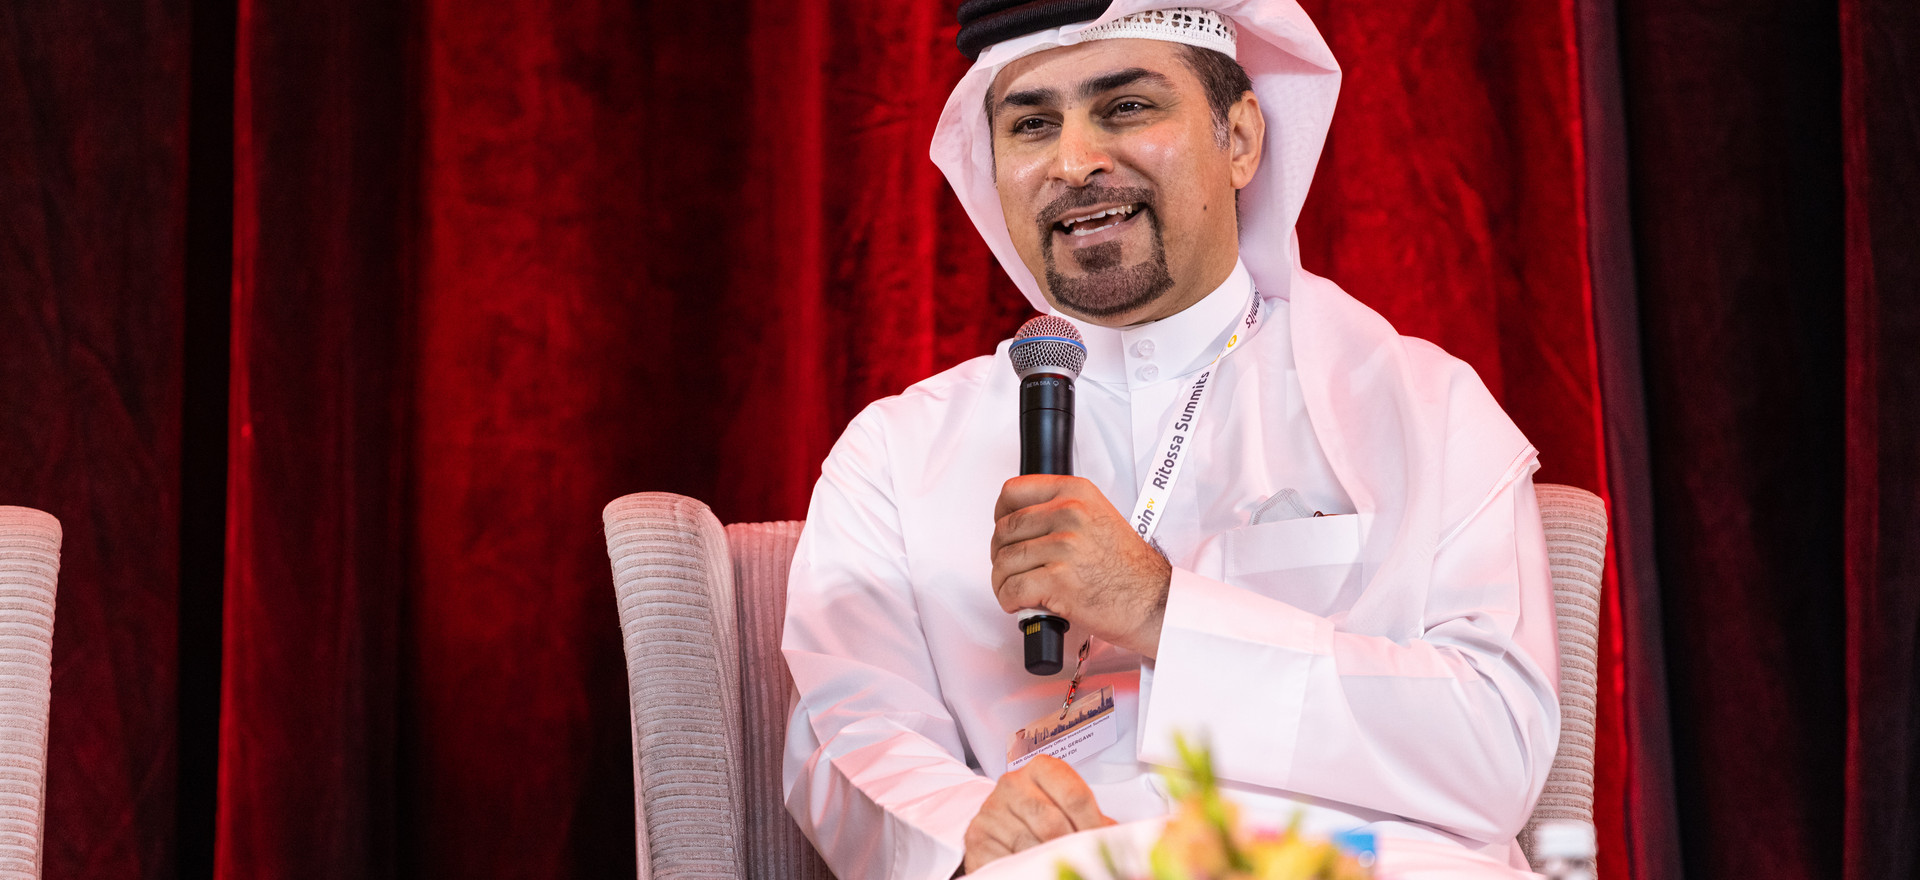 H.E. Fahad Al Gergawi, CEO, Dubai Investment Development Agency (Dubai FDI), UAE